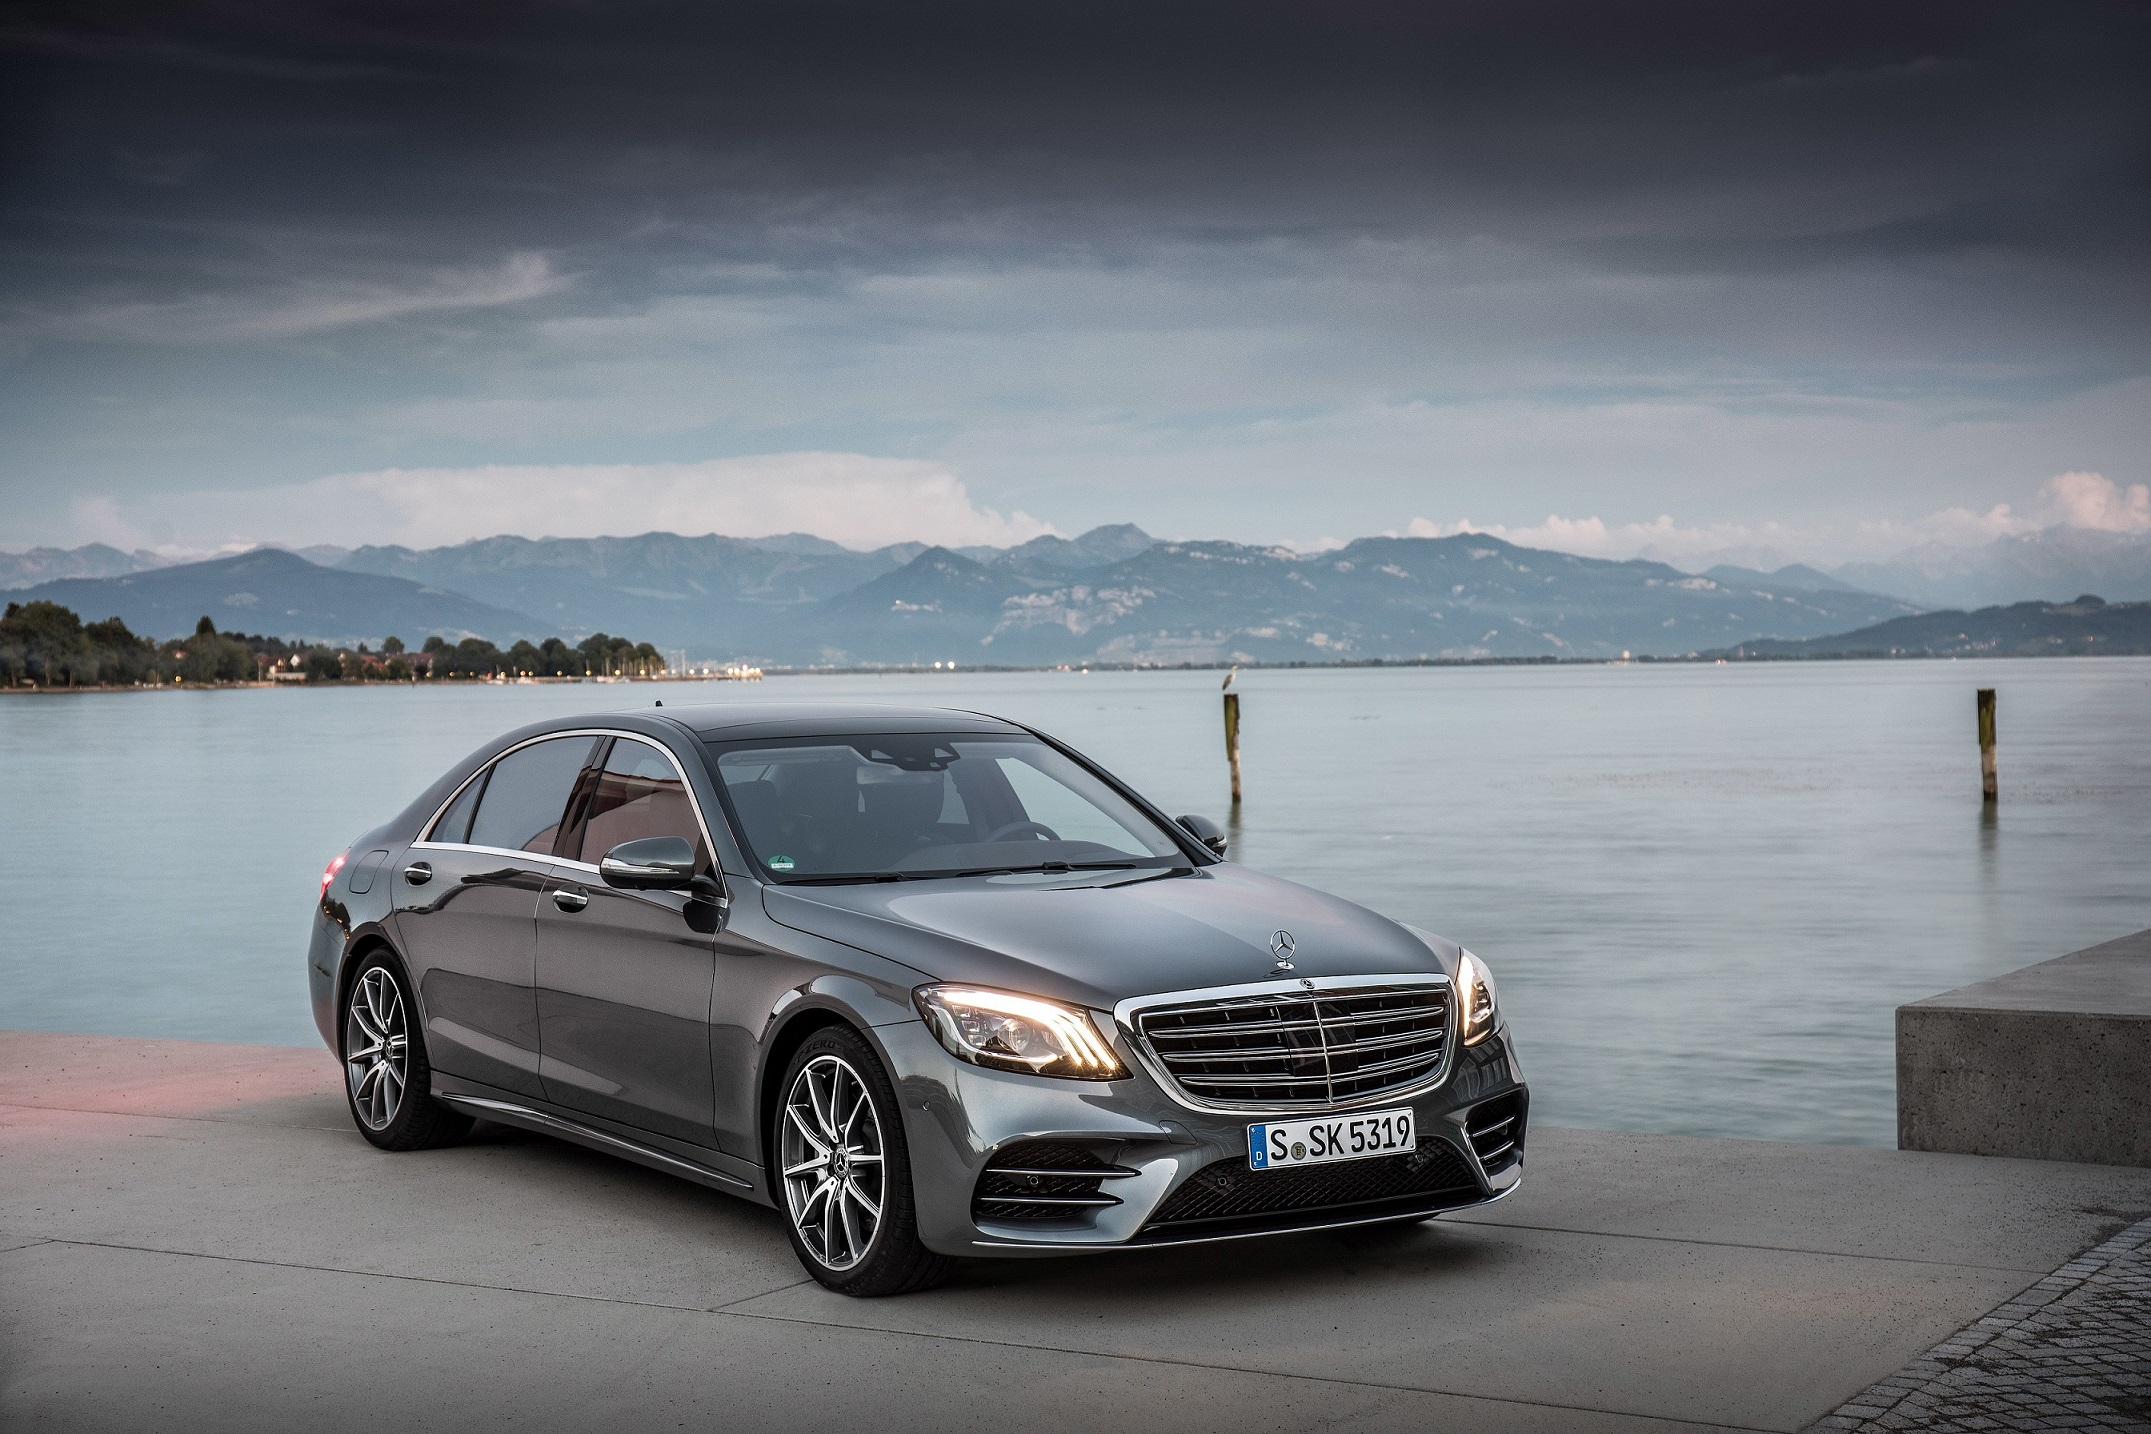 Mercedes-Benz S 500, selenitgrau metallic, Leder Exklusiv Nappa magmagrau/espressobraun;Kraftstoffverbrauch kombiniert: 6,6 l/100 km; CO2-Emissionen kombiniert: 150 g/km*  Mercedes-Benz S 500, selenite grey metallic, exclusive nappa leather magma grey/espresso brown;fuel consumption combined: 6.6 l/100 km; combined CO2 emissions: 150 g/km*